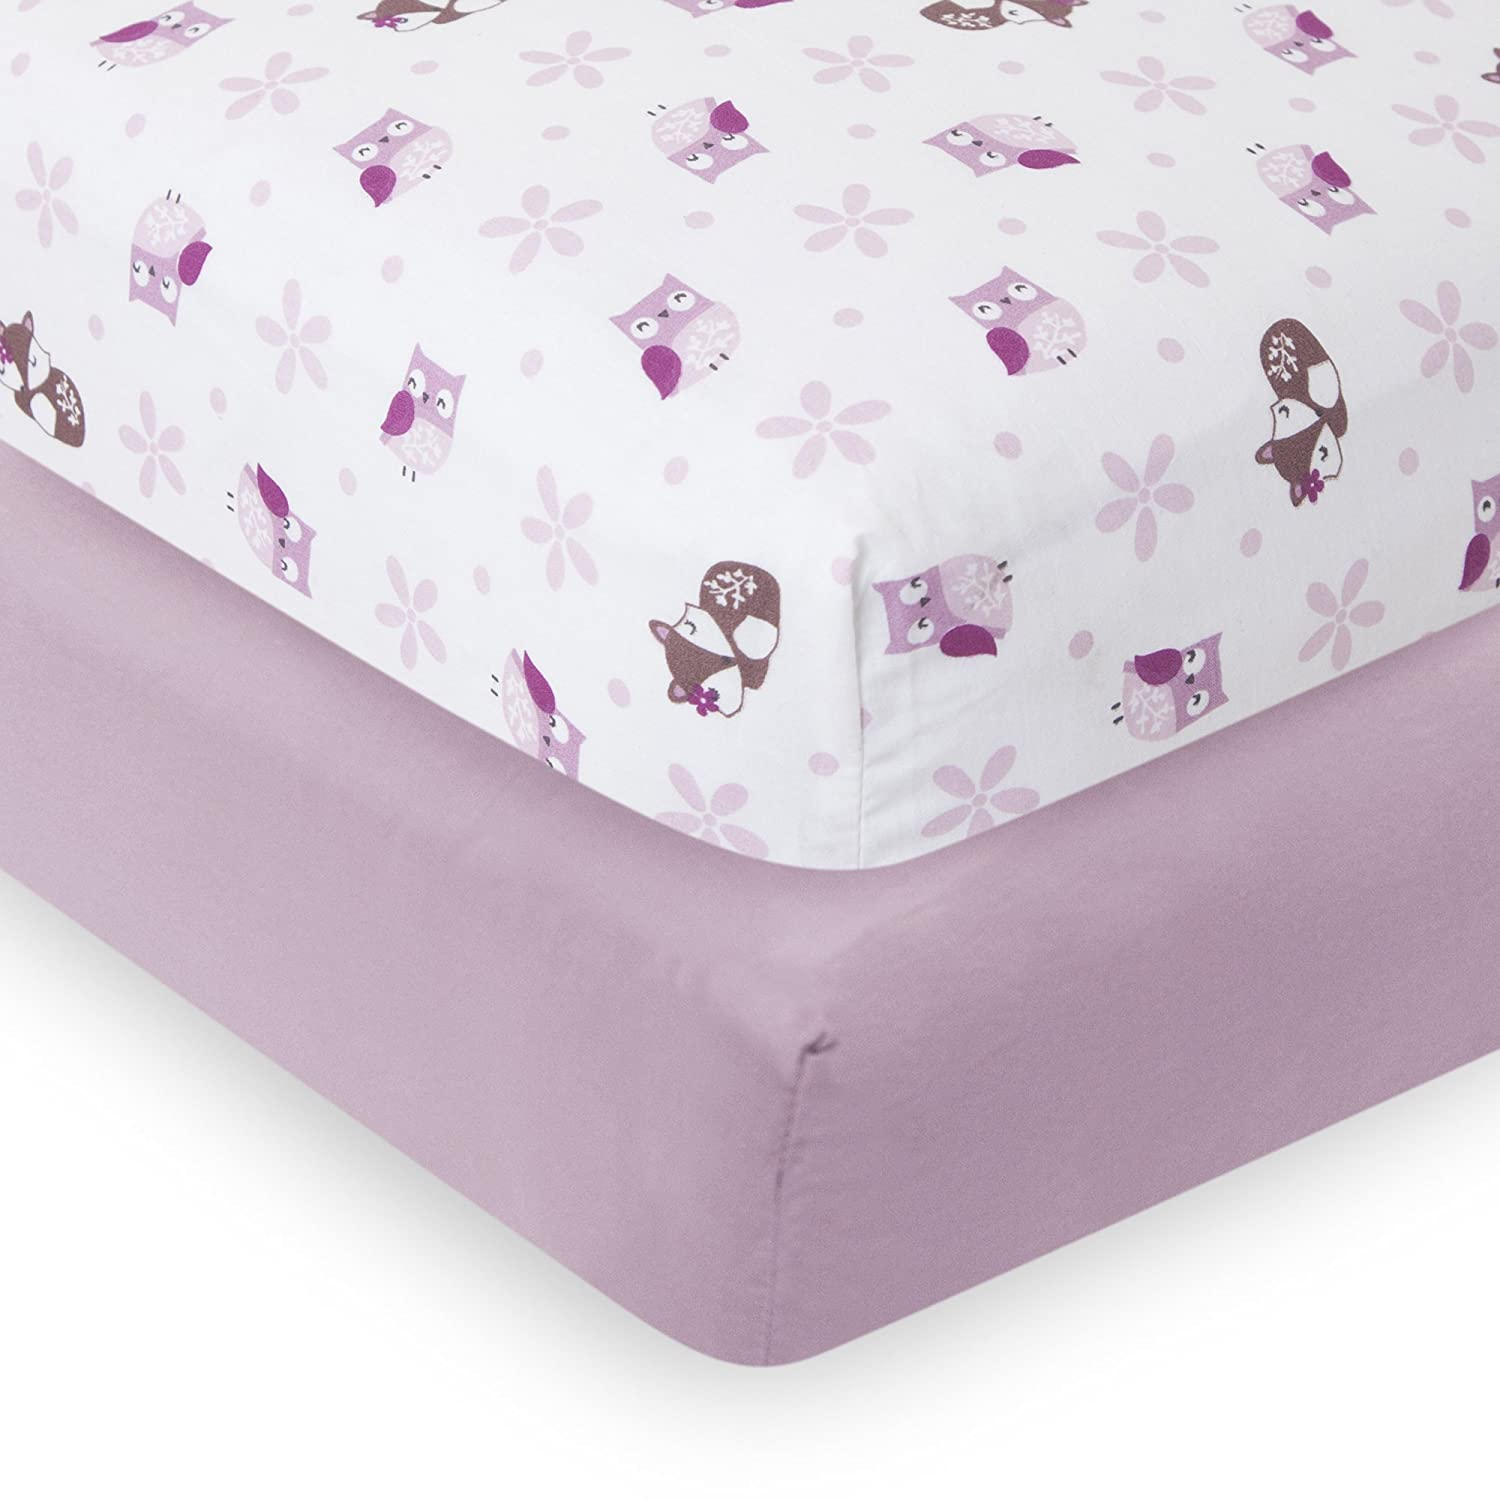 Bedtime Originals 2 Piece Lavender Woods Crib Sheet by Bedtime Originals Lambs & Ivy 233006A